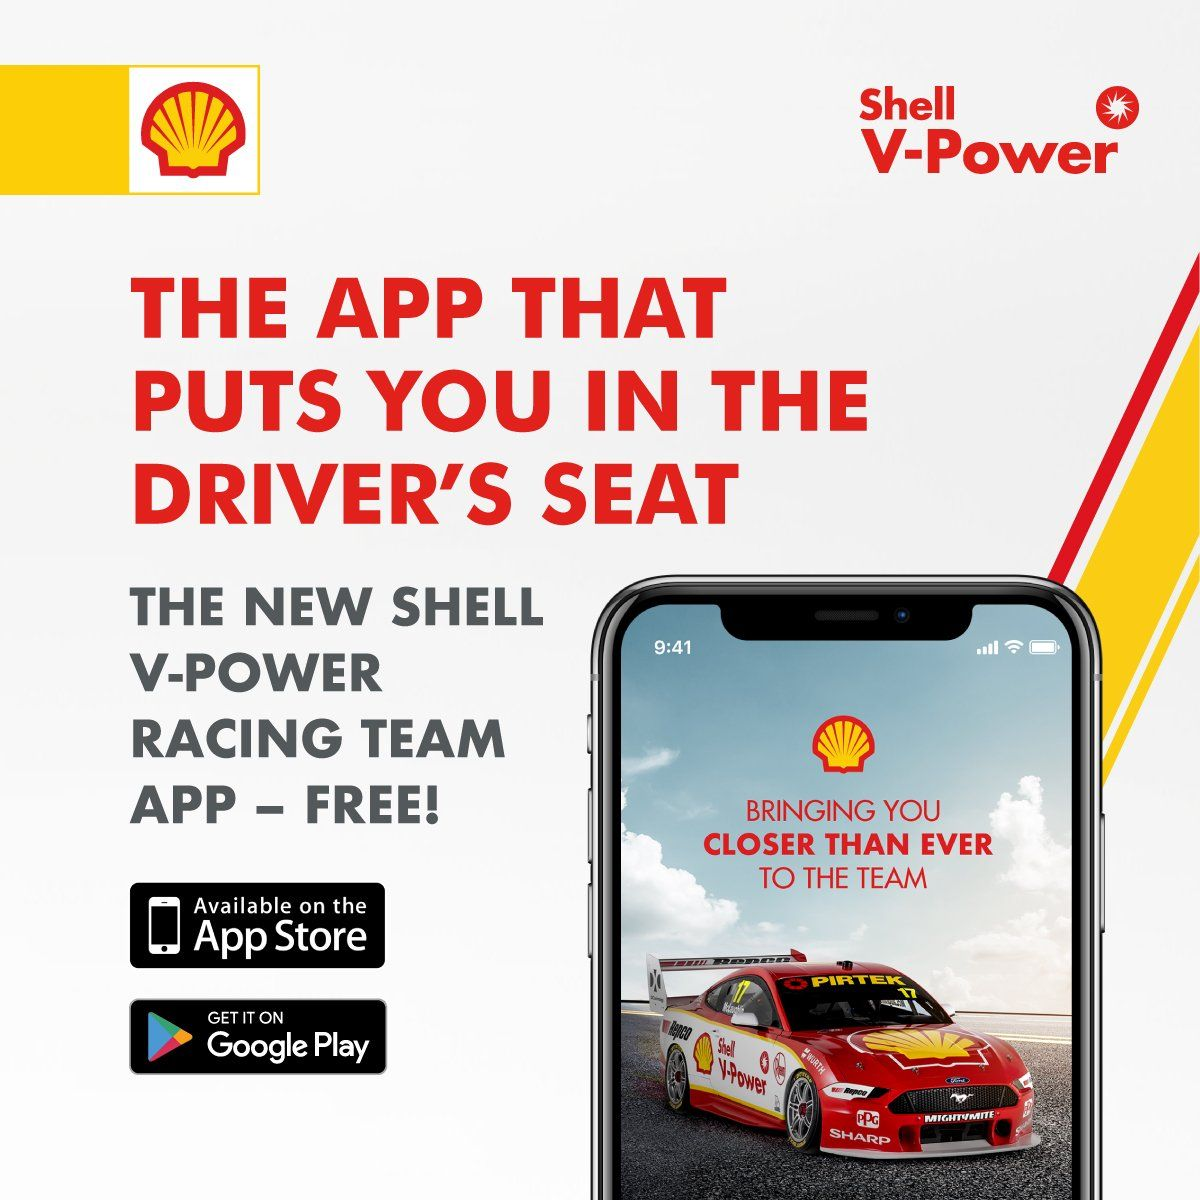 Shell V Power Racing Djrteampenske On Twitter With Images Automobile Marketing Automotive Marketing